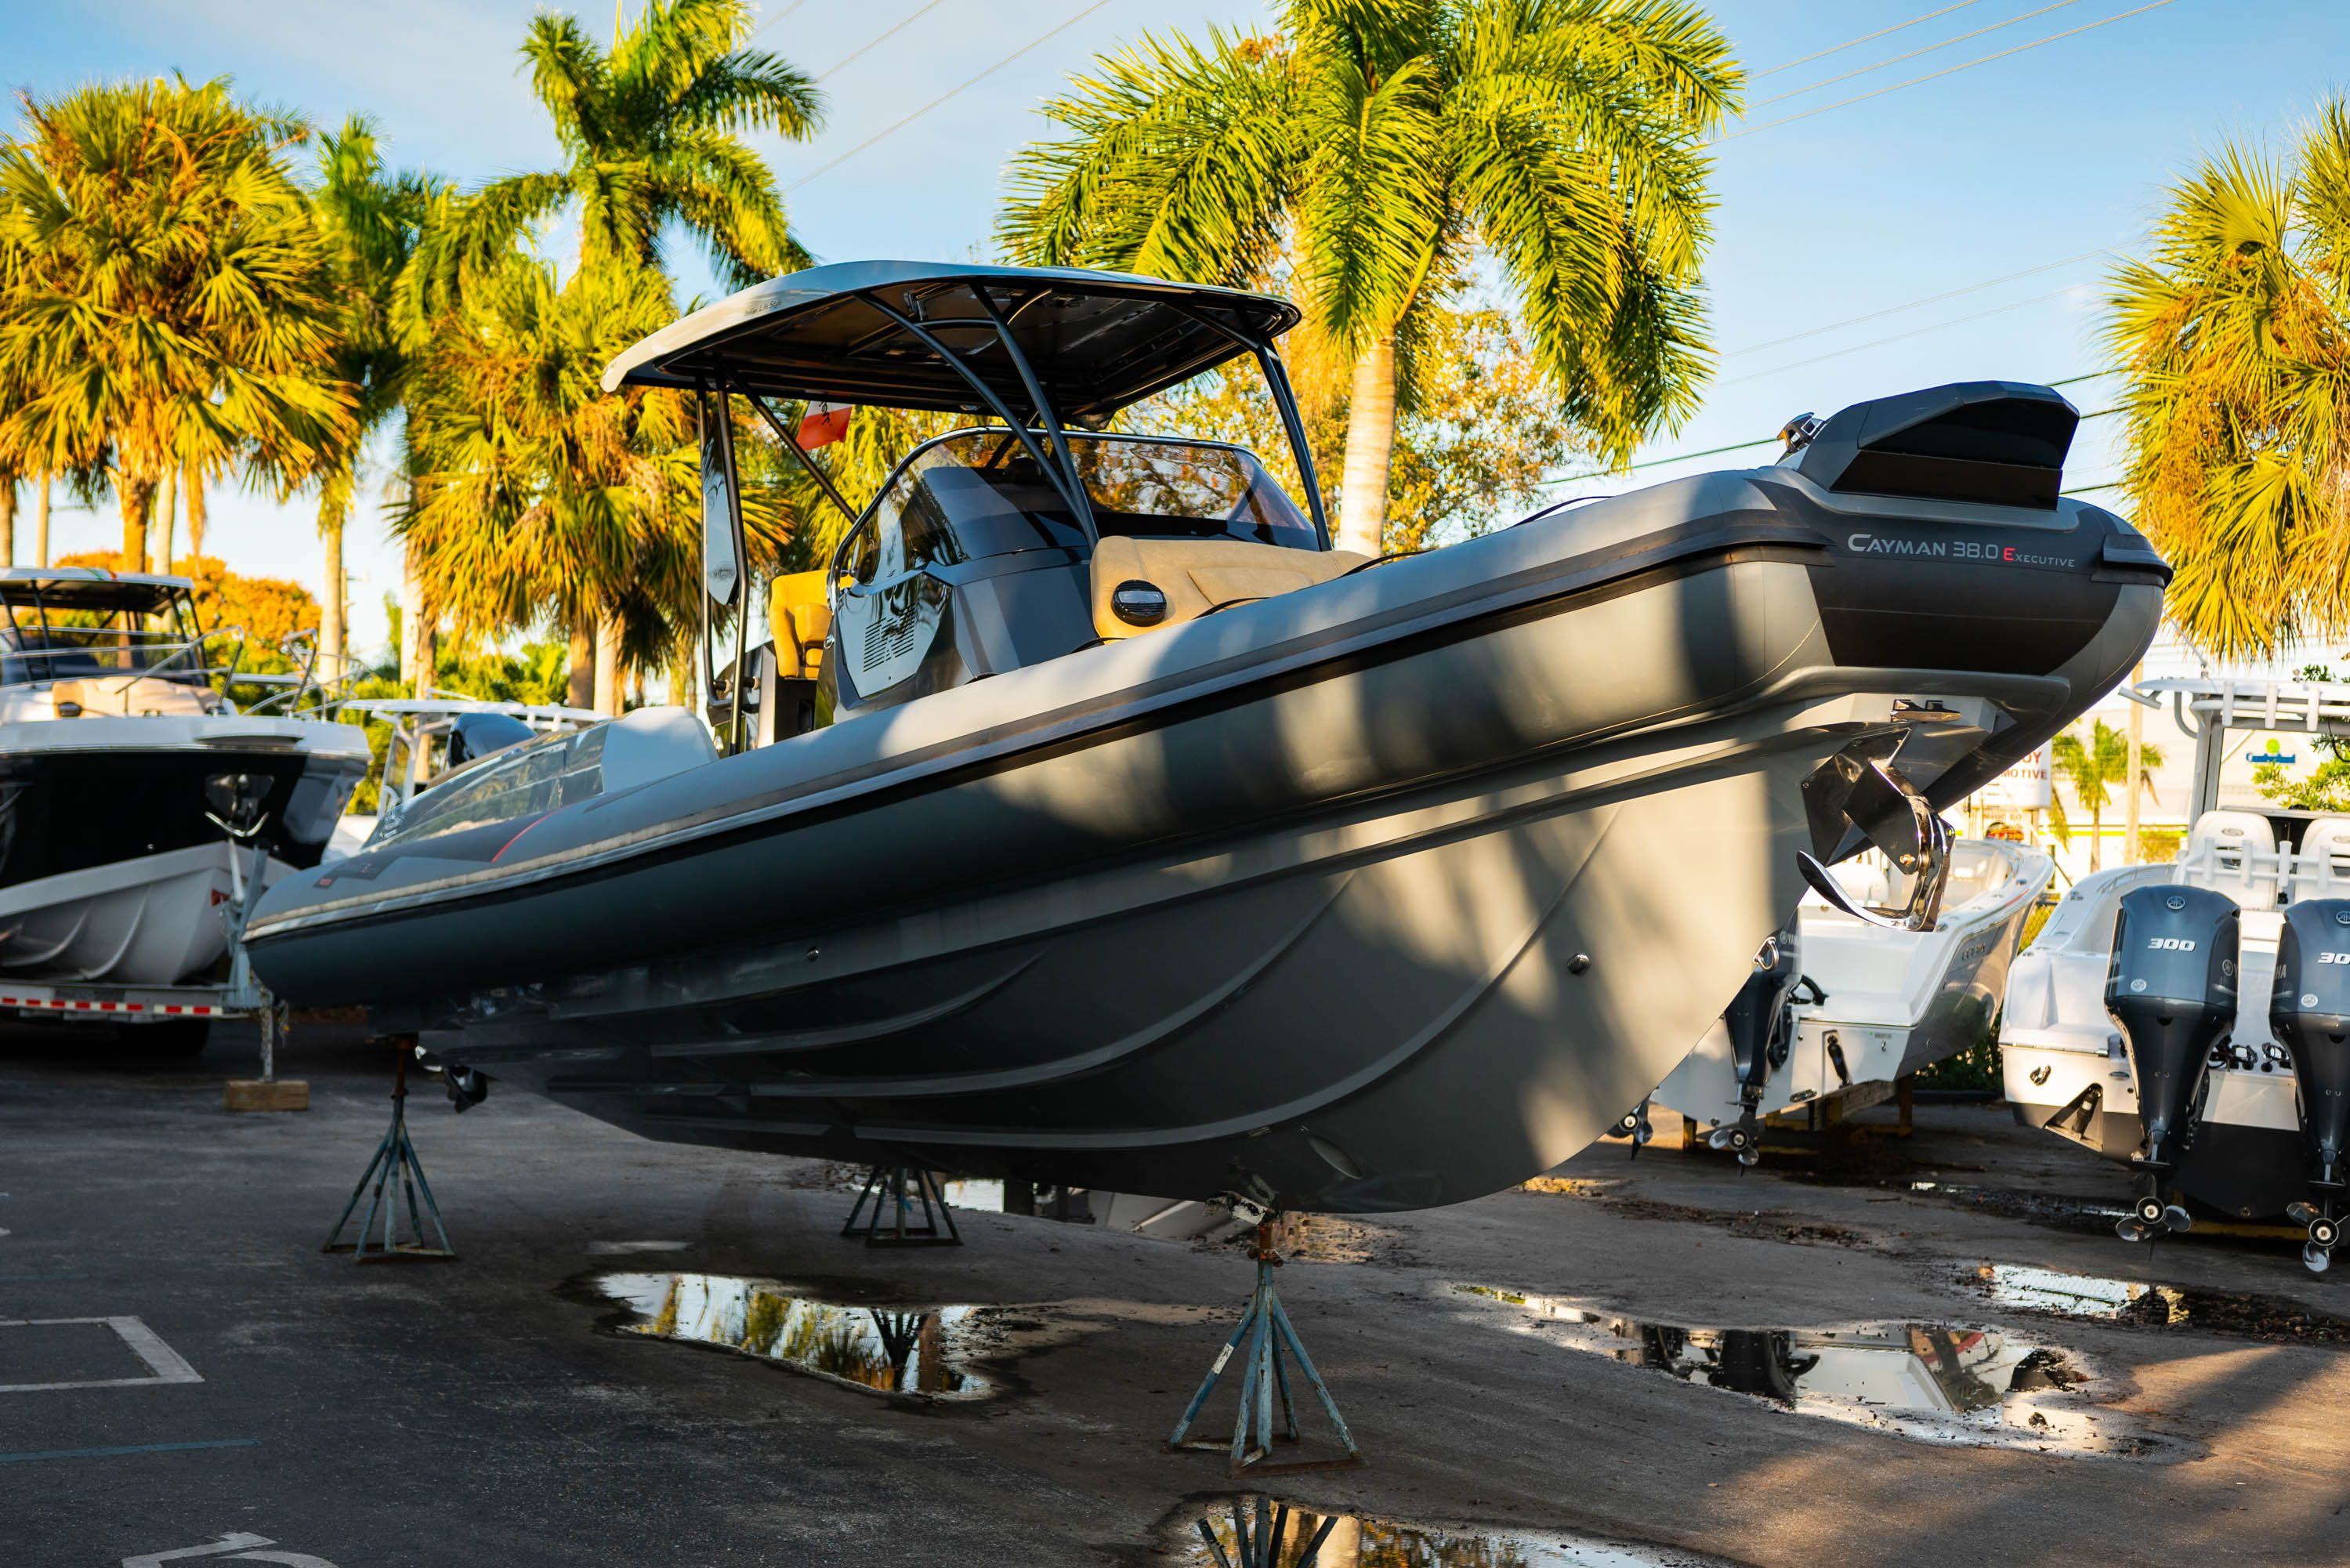 Thumbnail 6 for New 2019 Ranieri Cayman 38 Executive boat for sale in West Palm Beach, FL